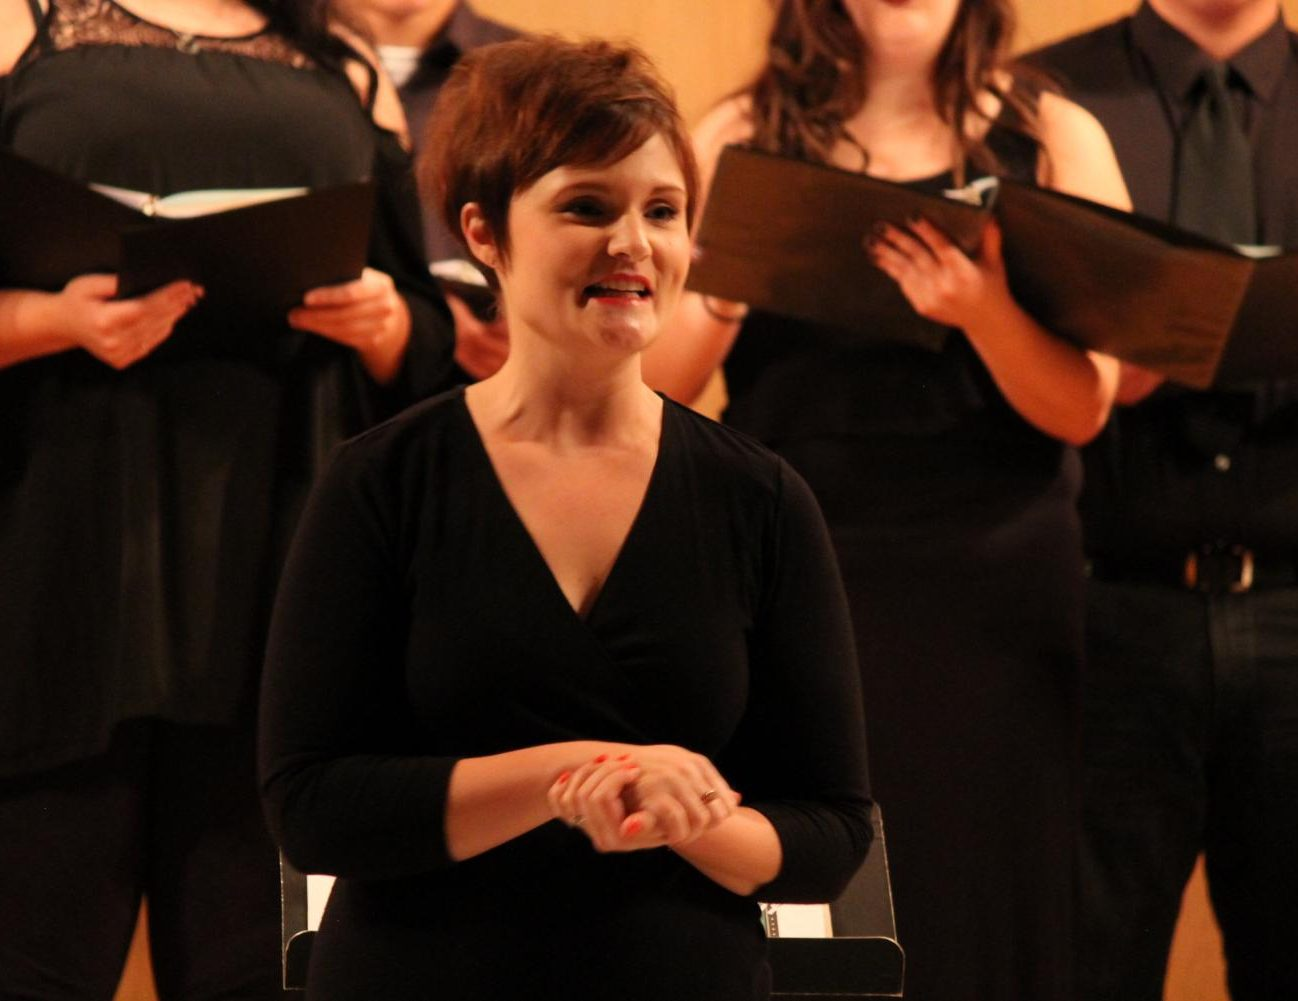 Adrienne Fleming is the new vocal music instructor at Allen, and conducted her first performance with the college earlier this month at the Bowlus Fine Arts Center.